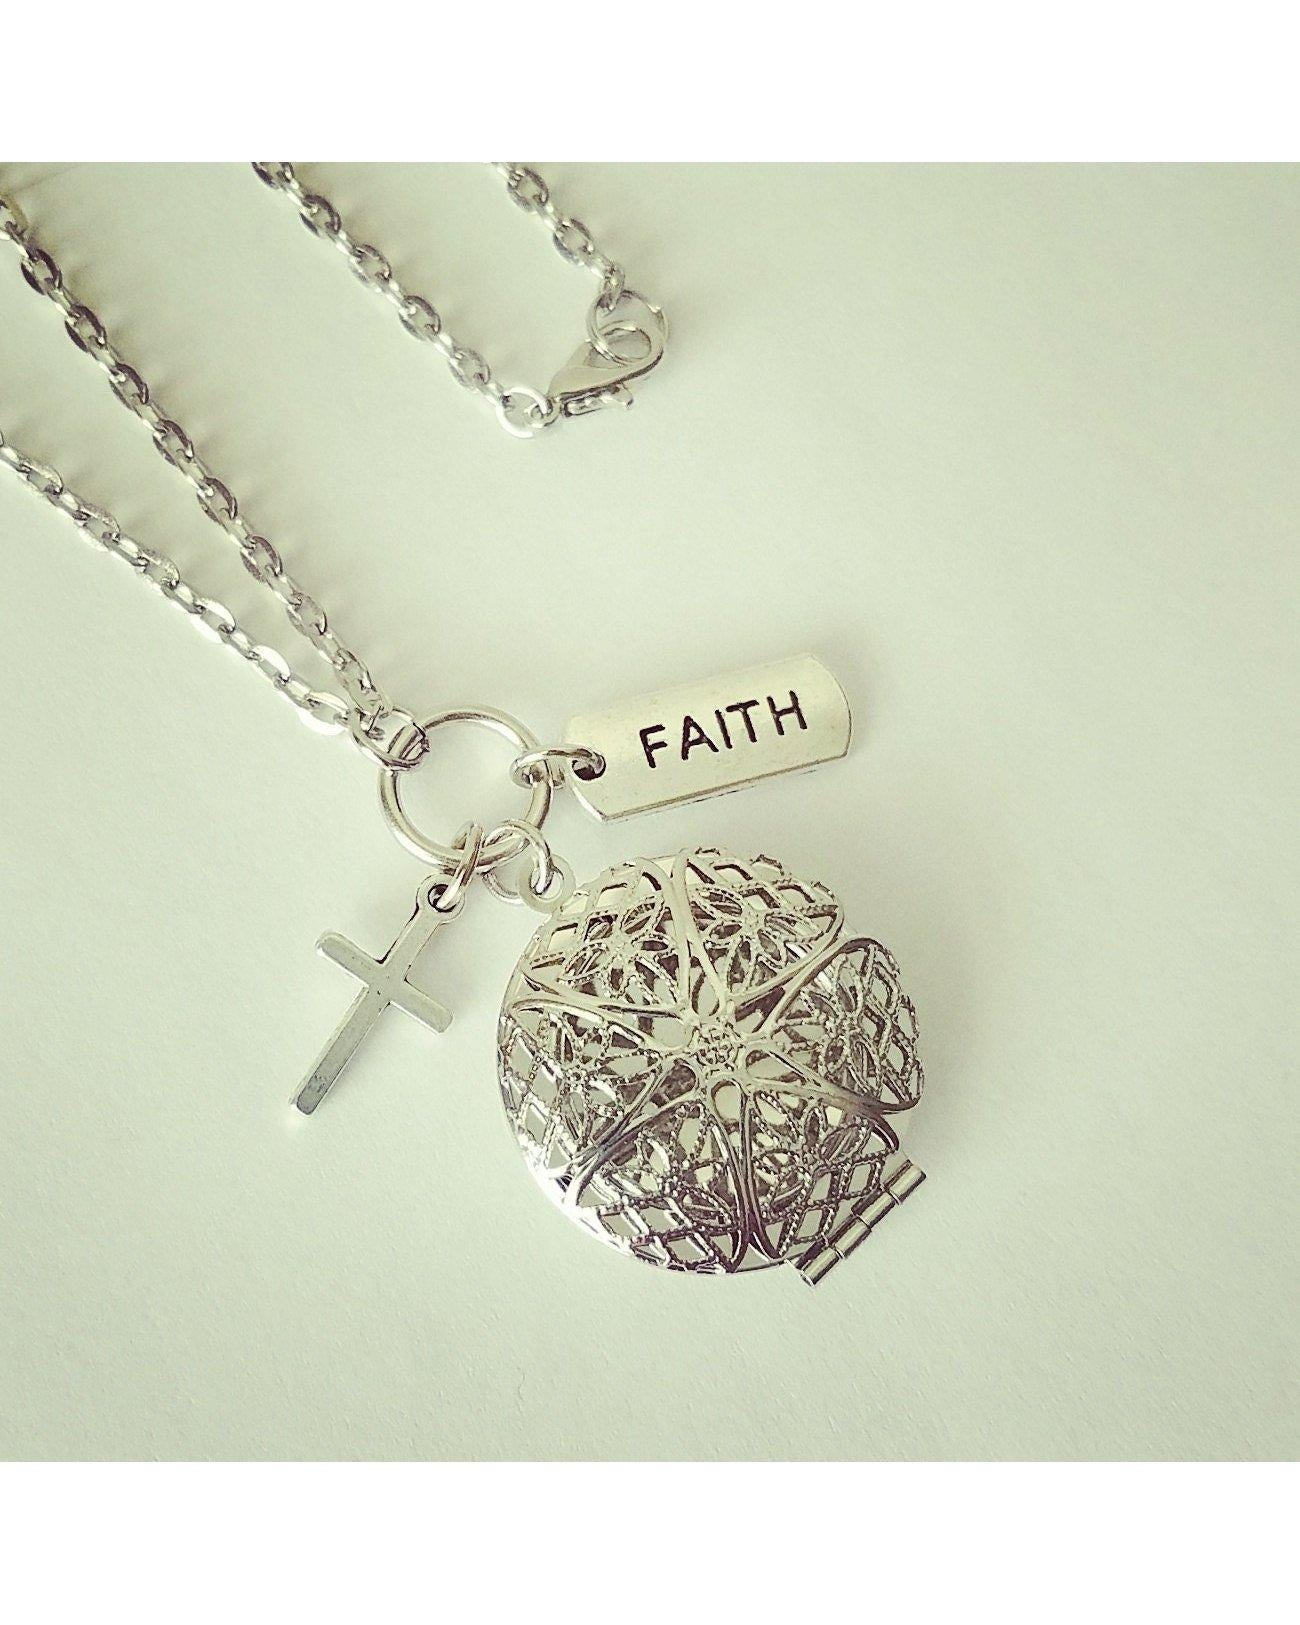 Faith Inspired Essential Oil Aromatherapy Diffuser Locket Necklace: Choose Antique Bronze, Shiny Silver, or Platinum/Matte Silver C068 - Essentially Elegant